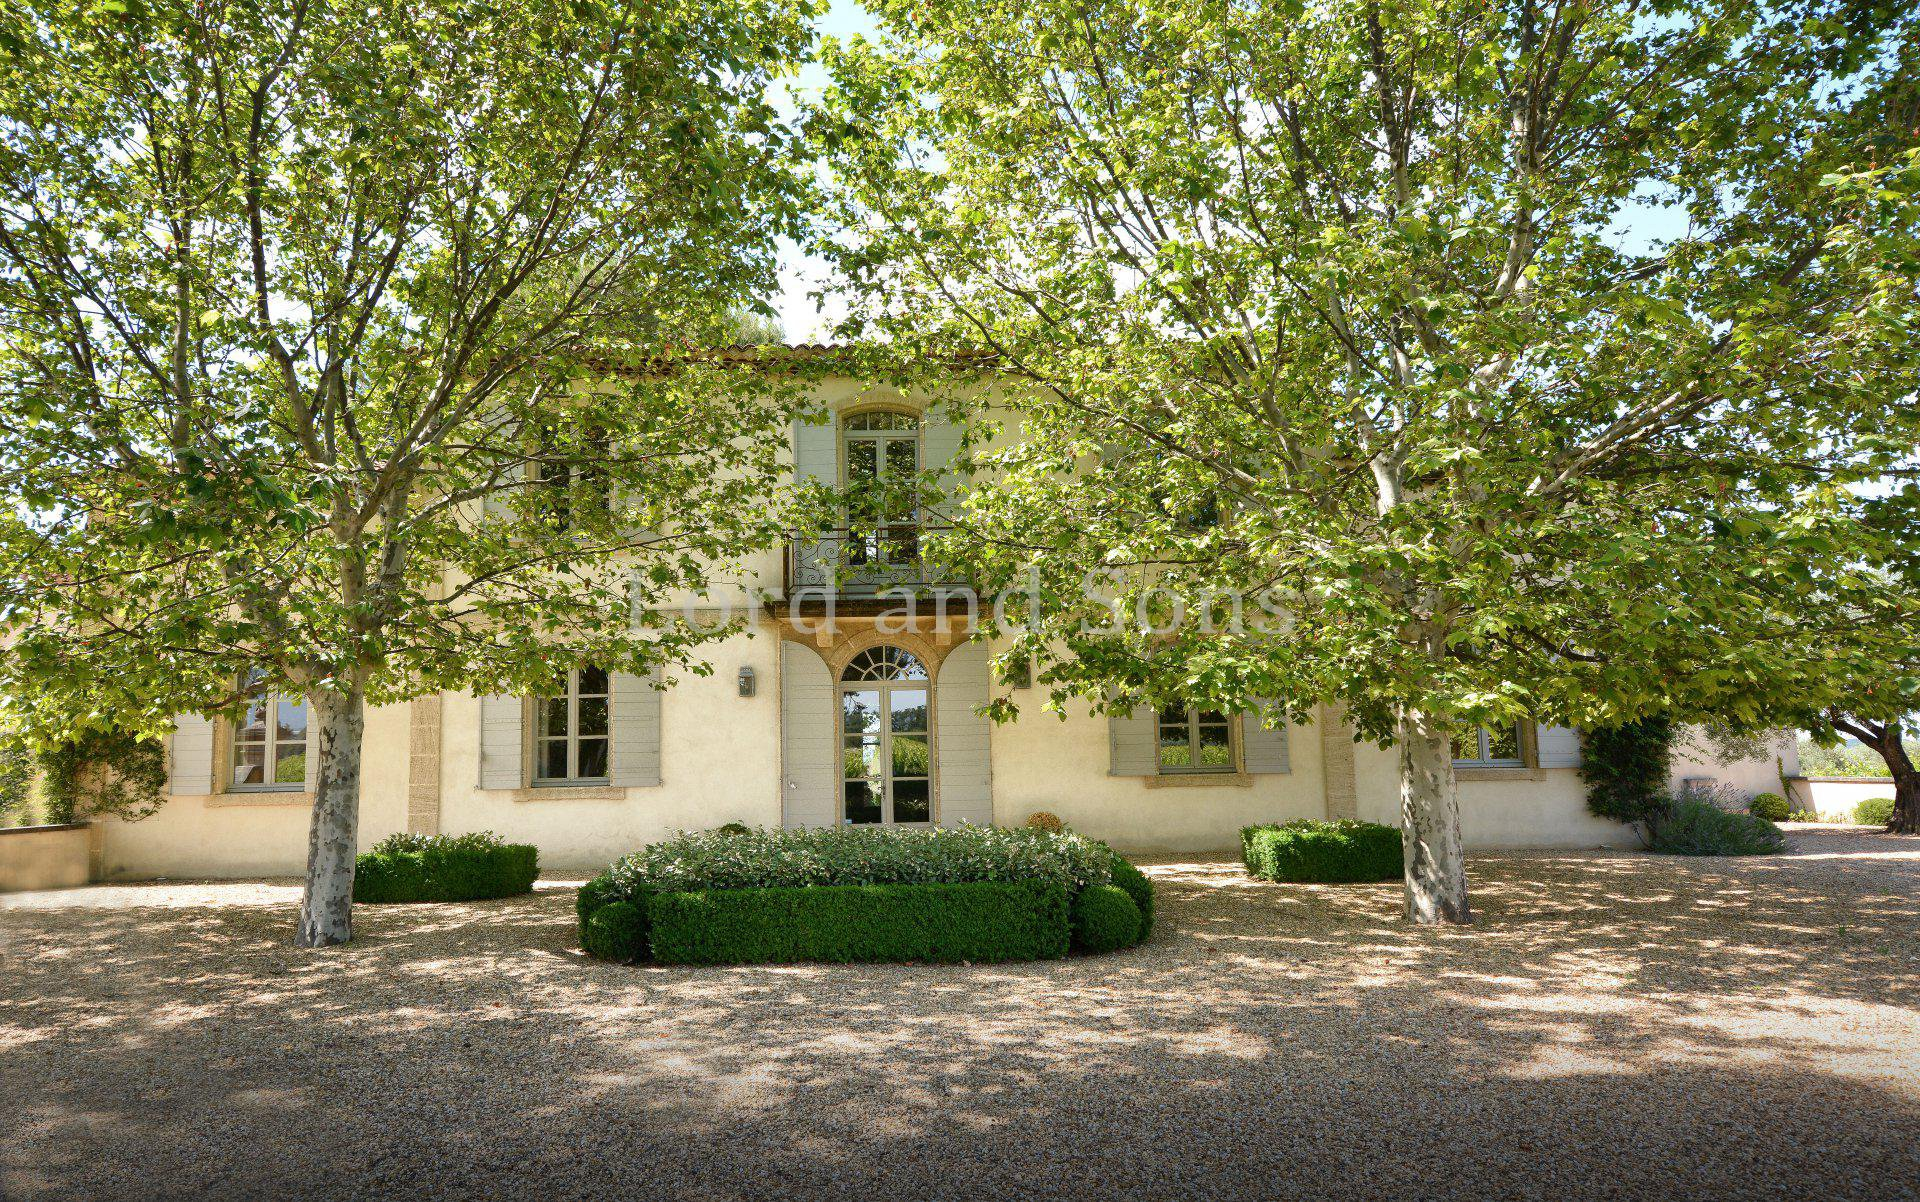 Mas Provencal A Vendre En Camargue lord and sons real estate - farmhouses and stone houses in